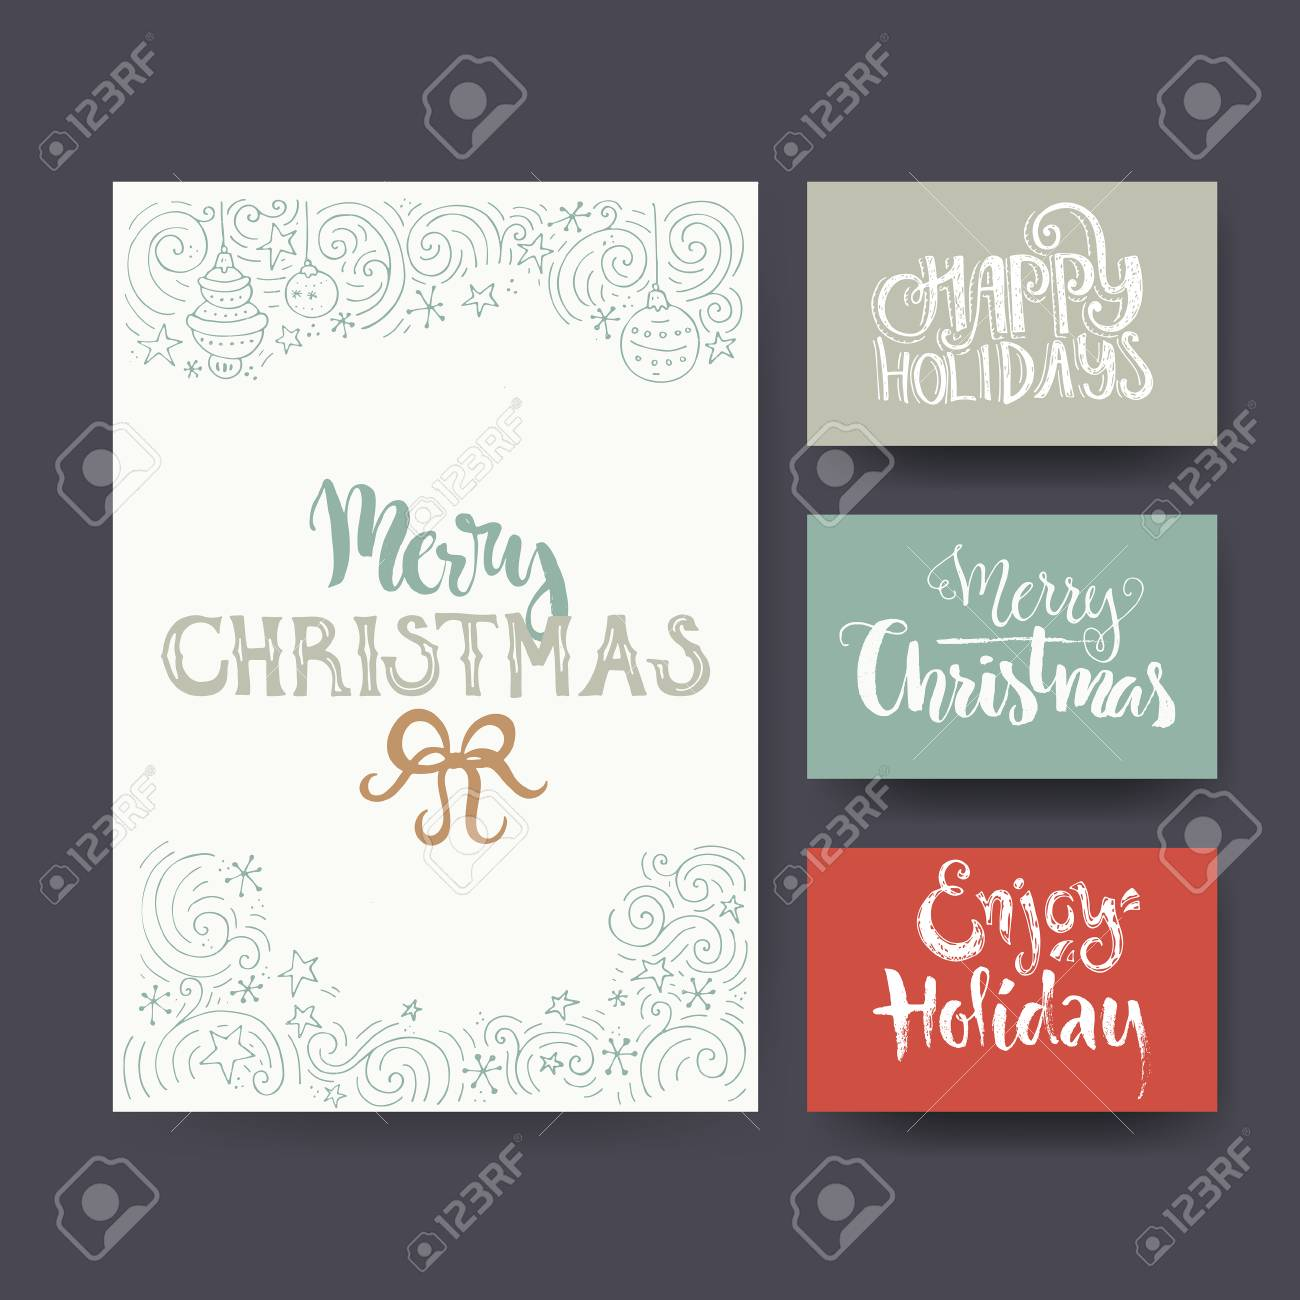 Unique Christmas Cards.Set Of Greeting Card Templates With Unique Christmas Design Elements